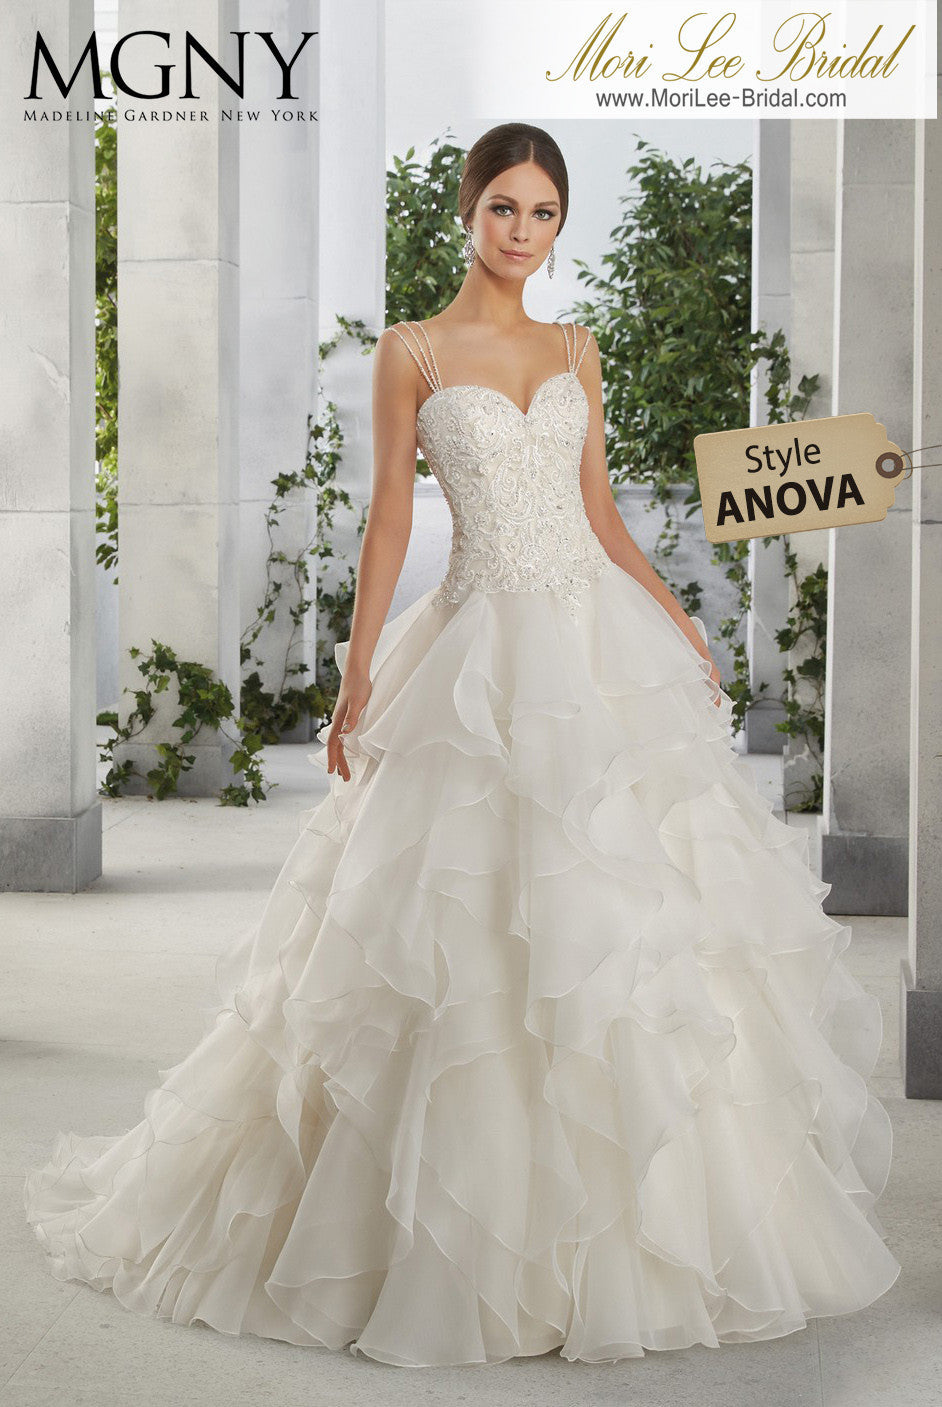 ANOVA - Mori Lee Bridal